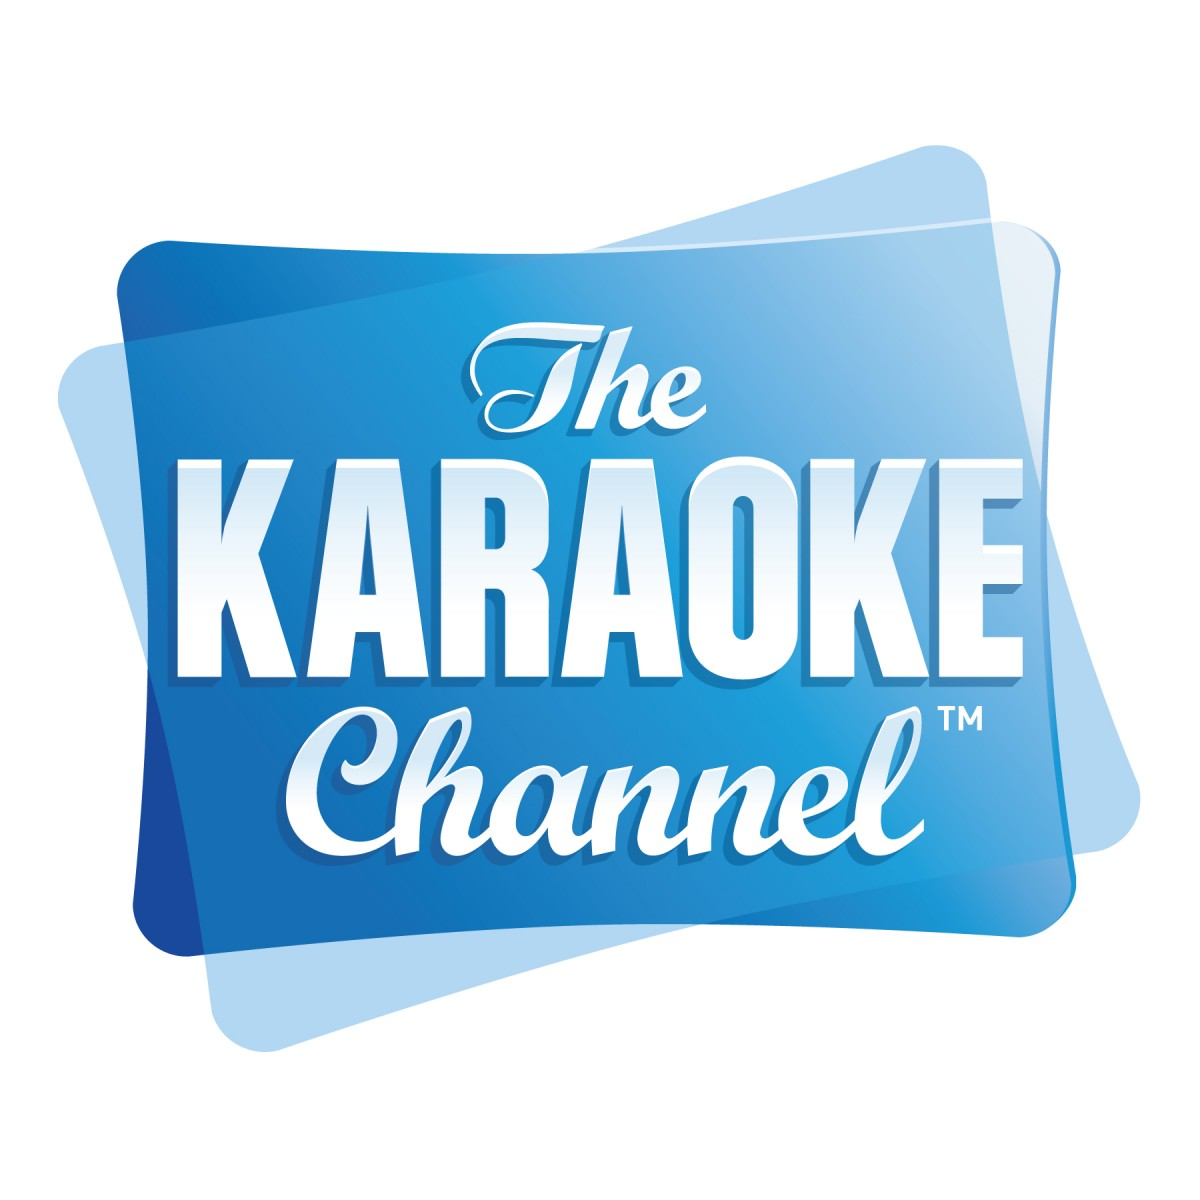 The Karaoke Channel - Best Party Songs Prime Video. $ - $ $ 0 $ 1 99 Buy episodes or Buy season. 5 out of 5 stars 1. Karaoke Party by RedKaraoke May 30, by Red Karaoke. Free Available instantly on compatible devices. out of 5 stars In App Purchases;.